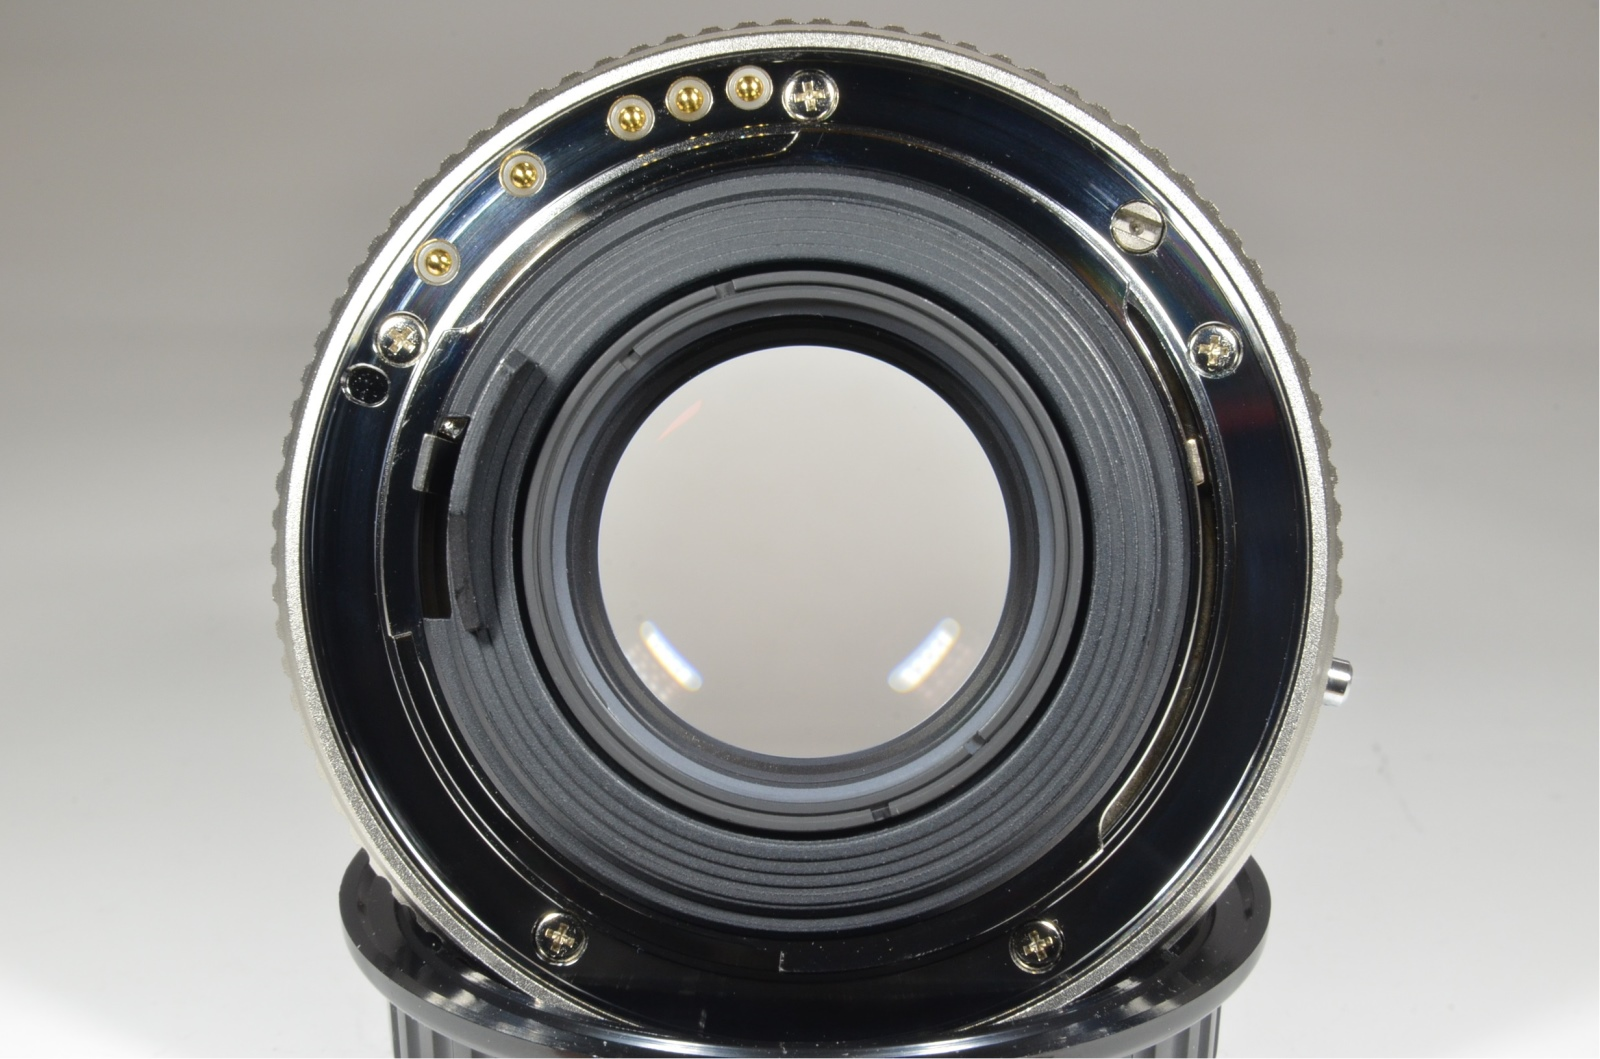 pentax smc fa 43mm f1.9 limited lens made in japan in boxed